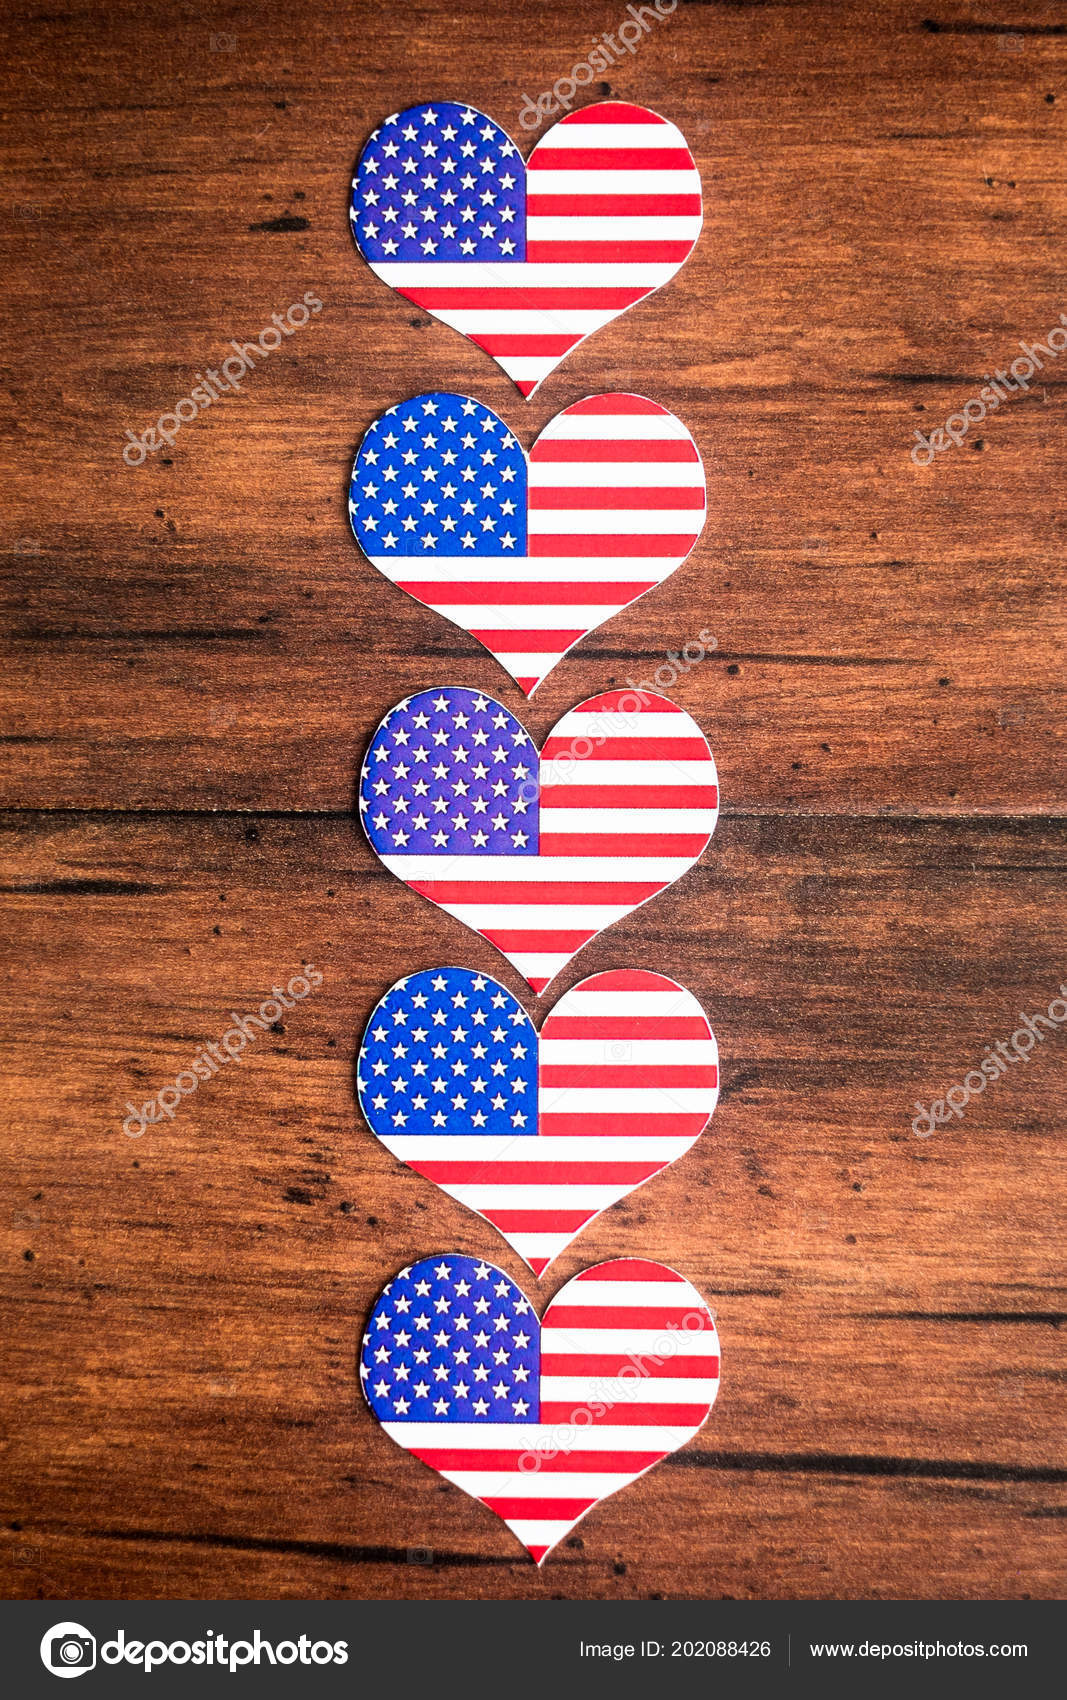 e0639594d74 American Independence Day Background Blue White Red Mixed Stars ...